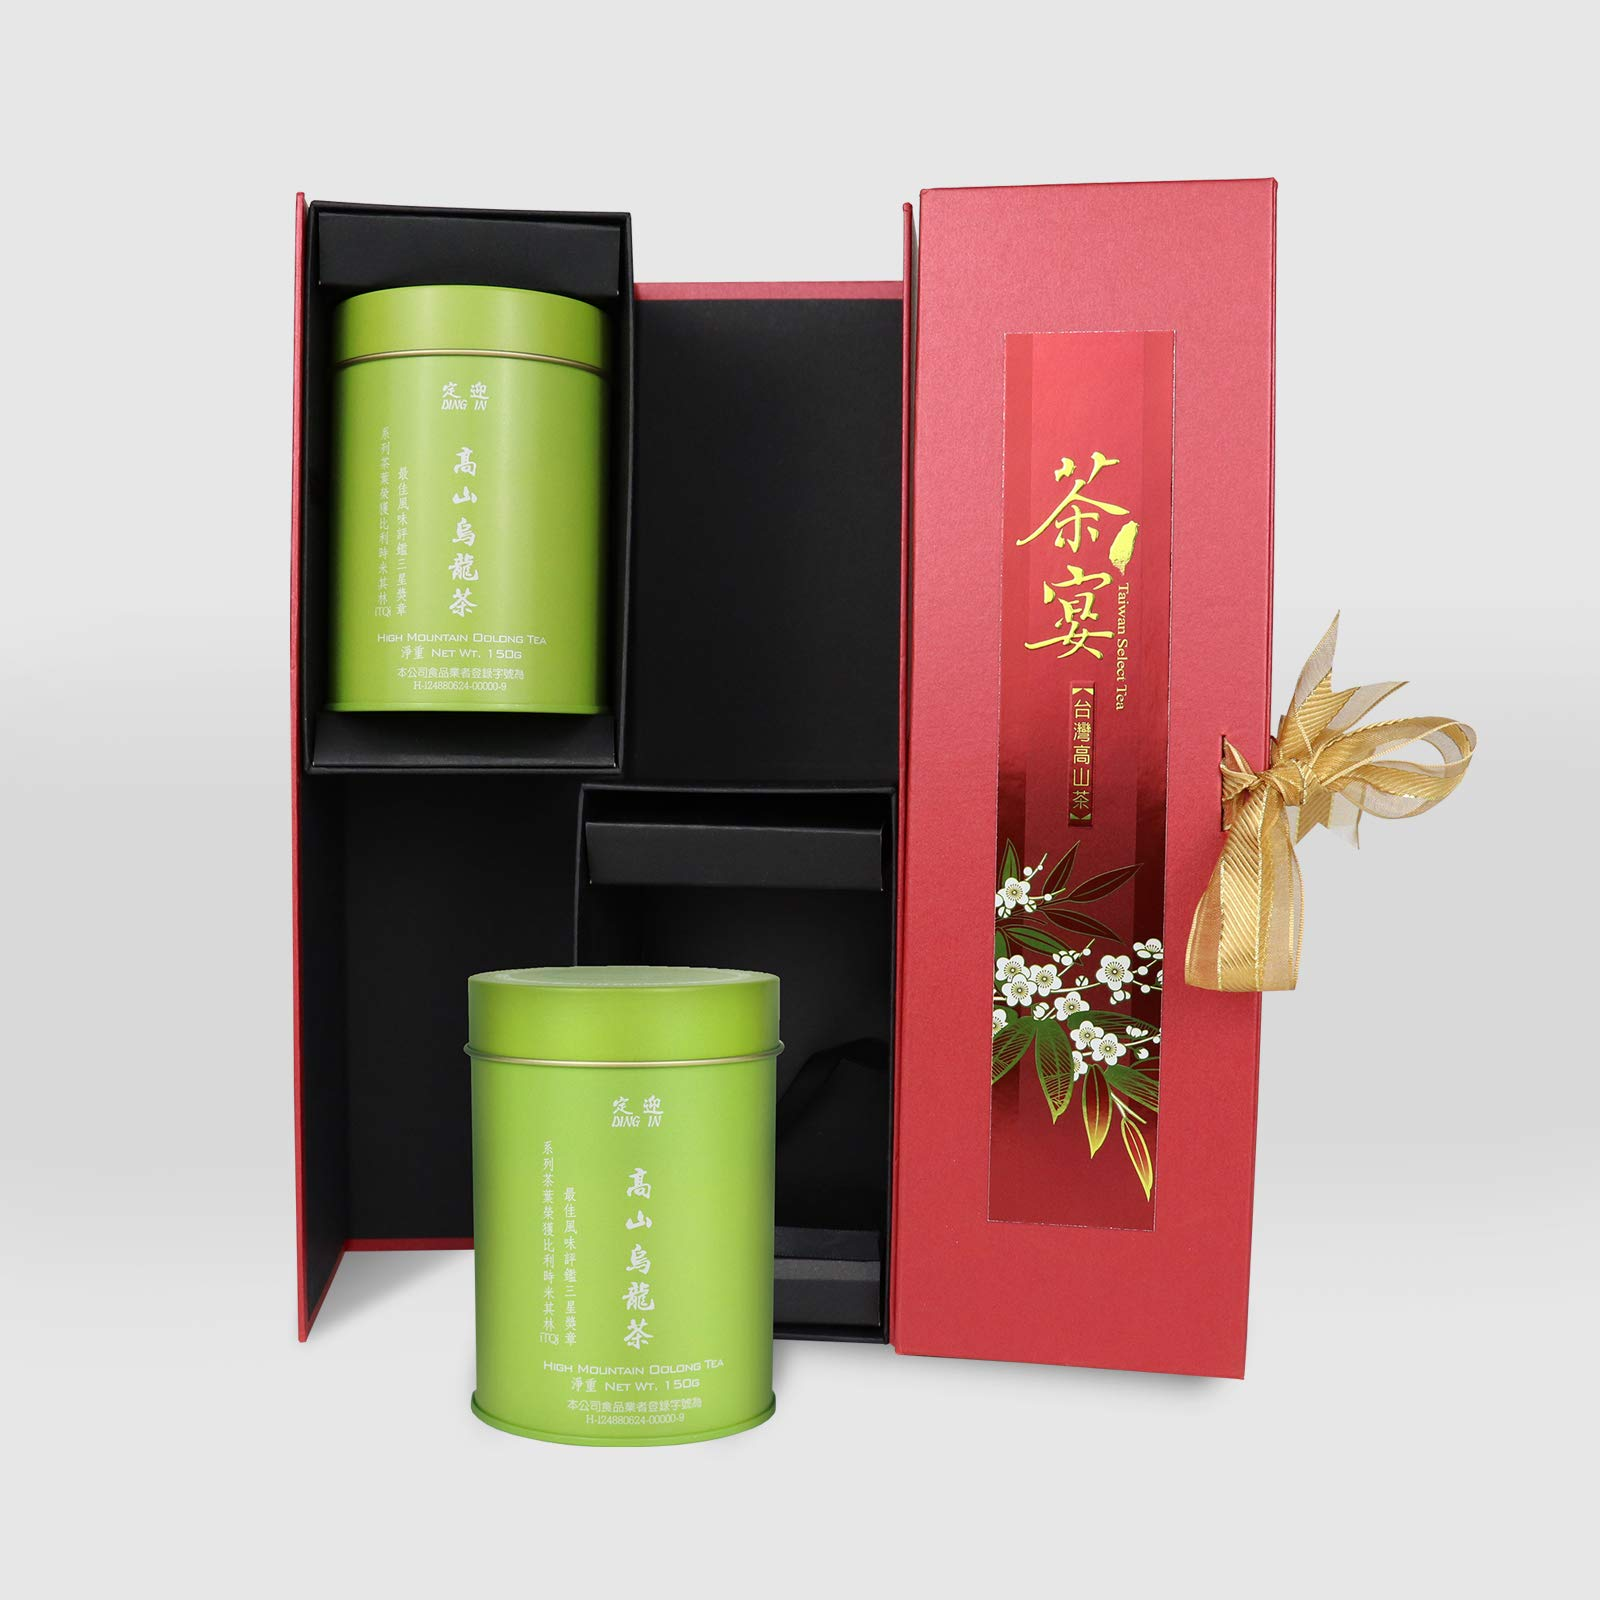 DING IN High-mountain Oolong Tea Feast Straight Gift Box 150g/2cans by Ding In ltd. (Image #1)